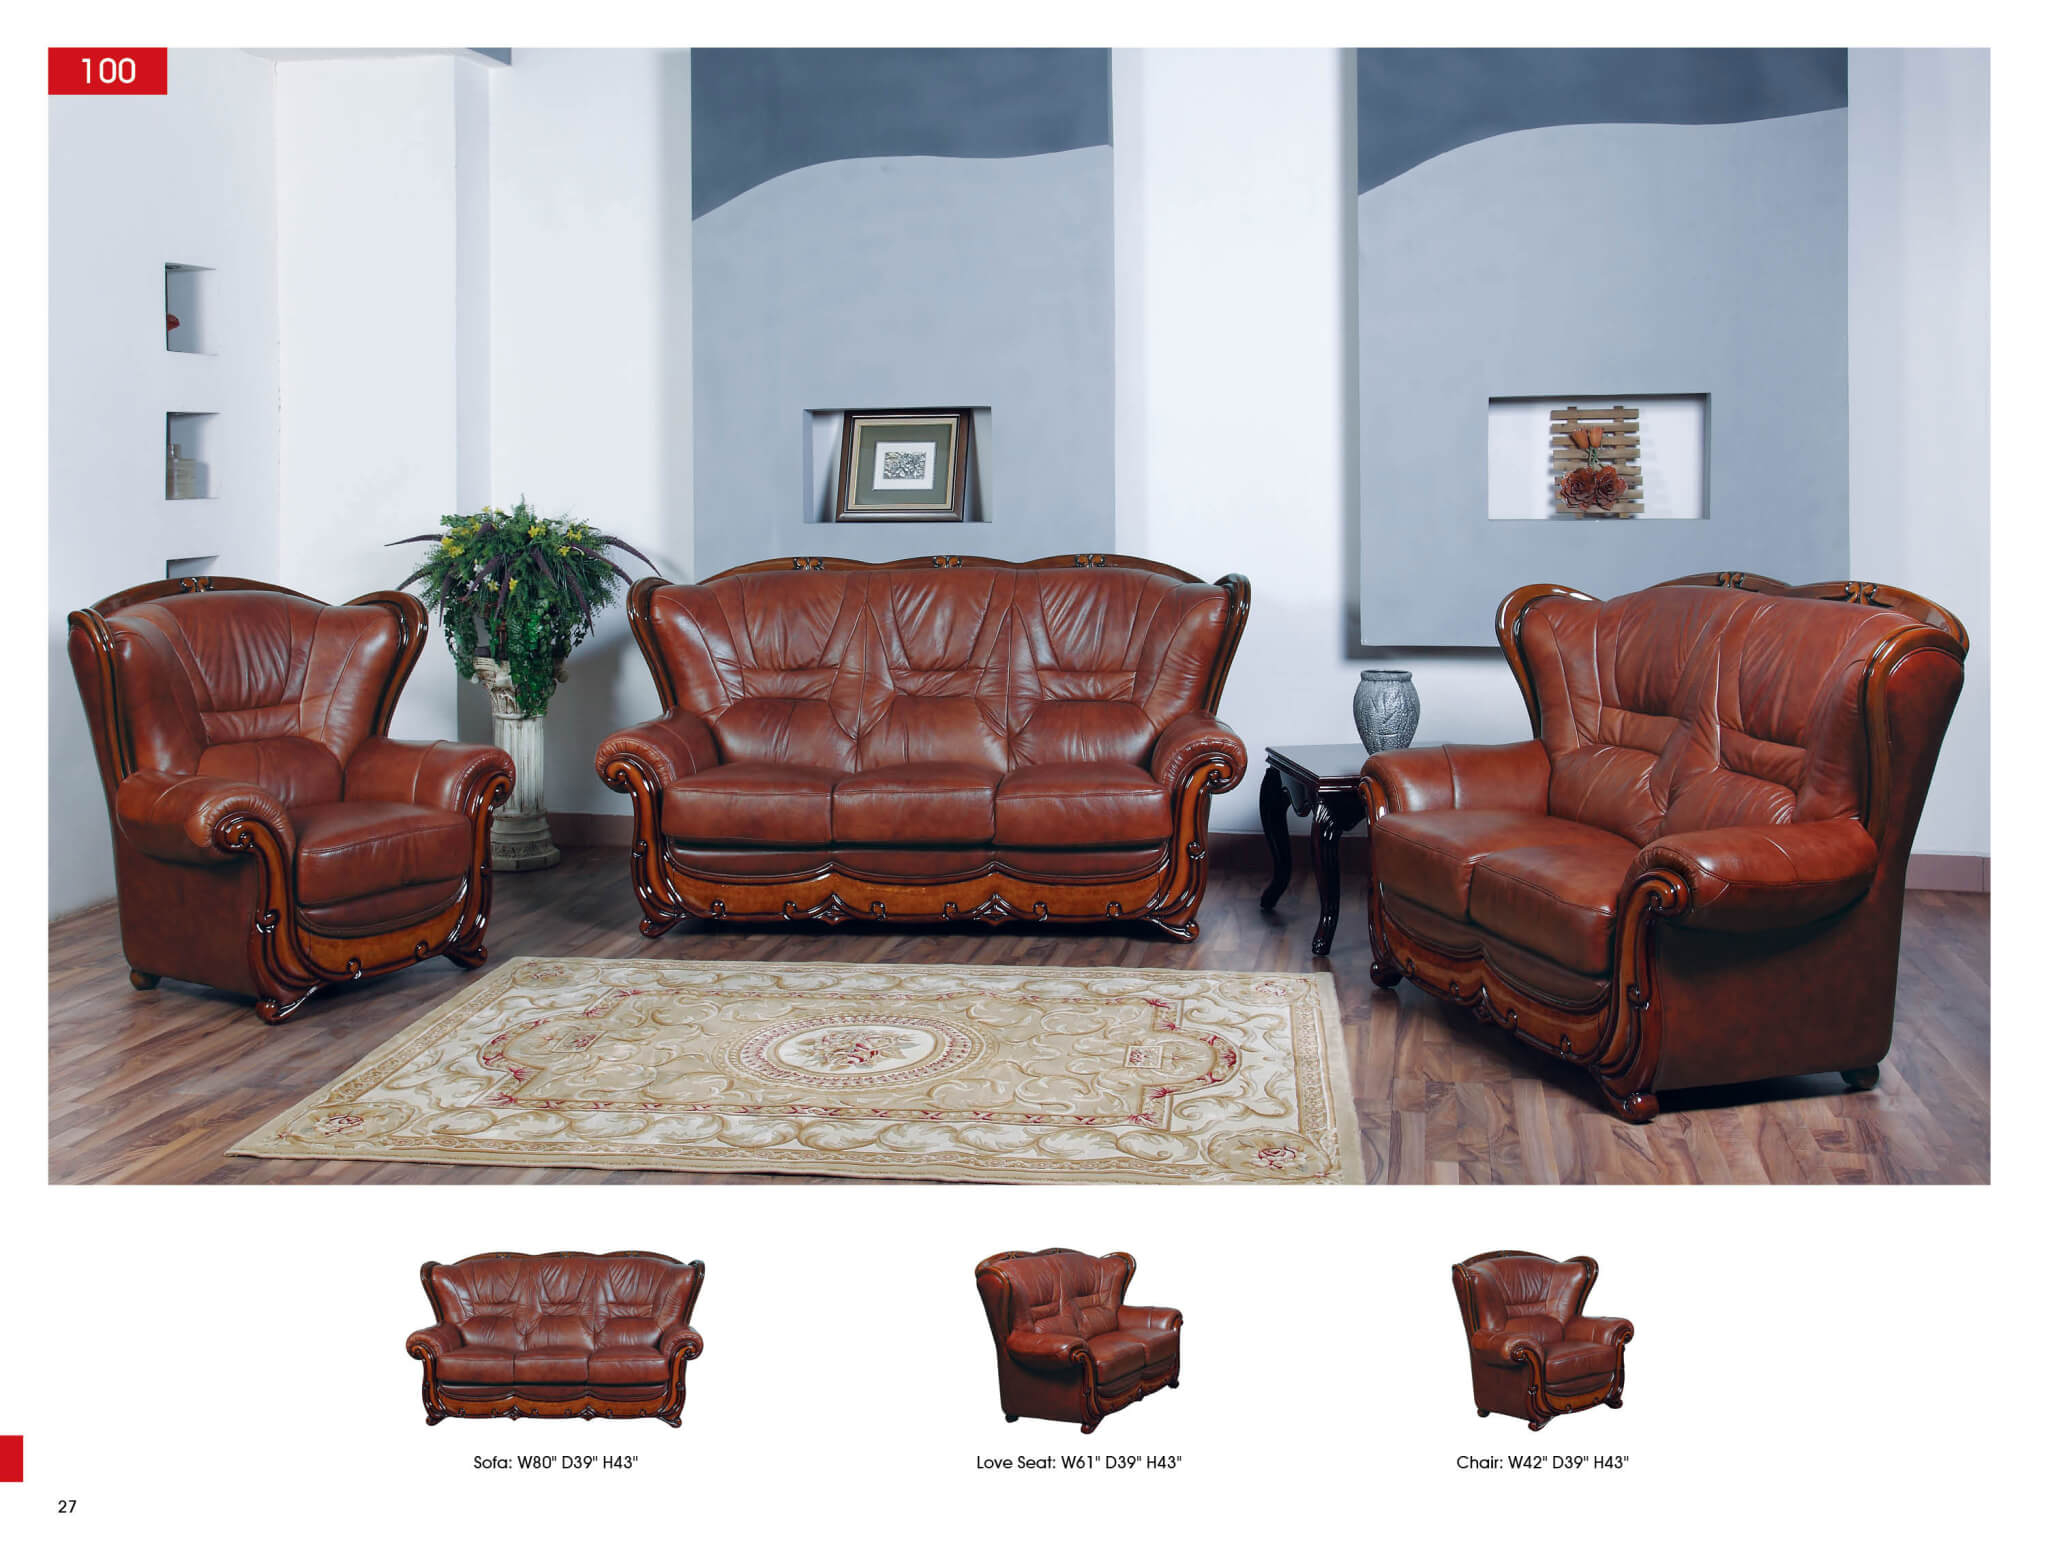 3 Pc Leather Living Room Set Antique Recreations for 15 Smart Tricks of How to Make 3 Pc's Leather Living Room Set